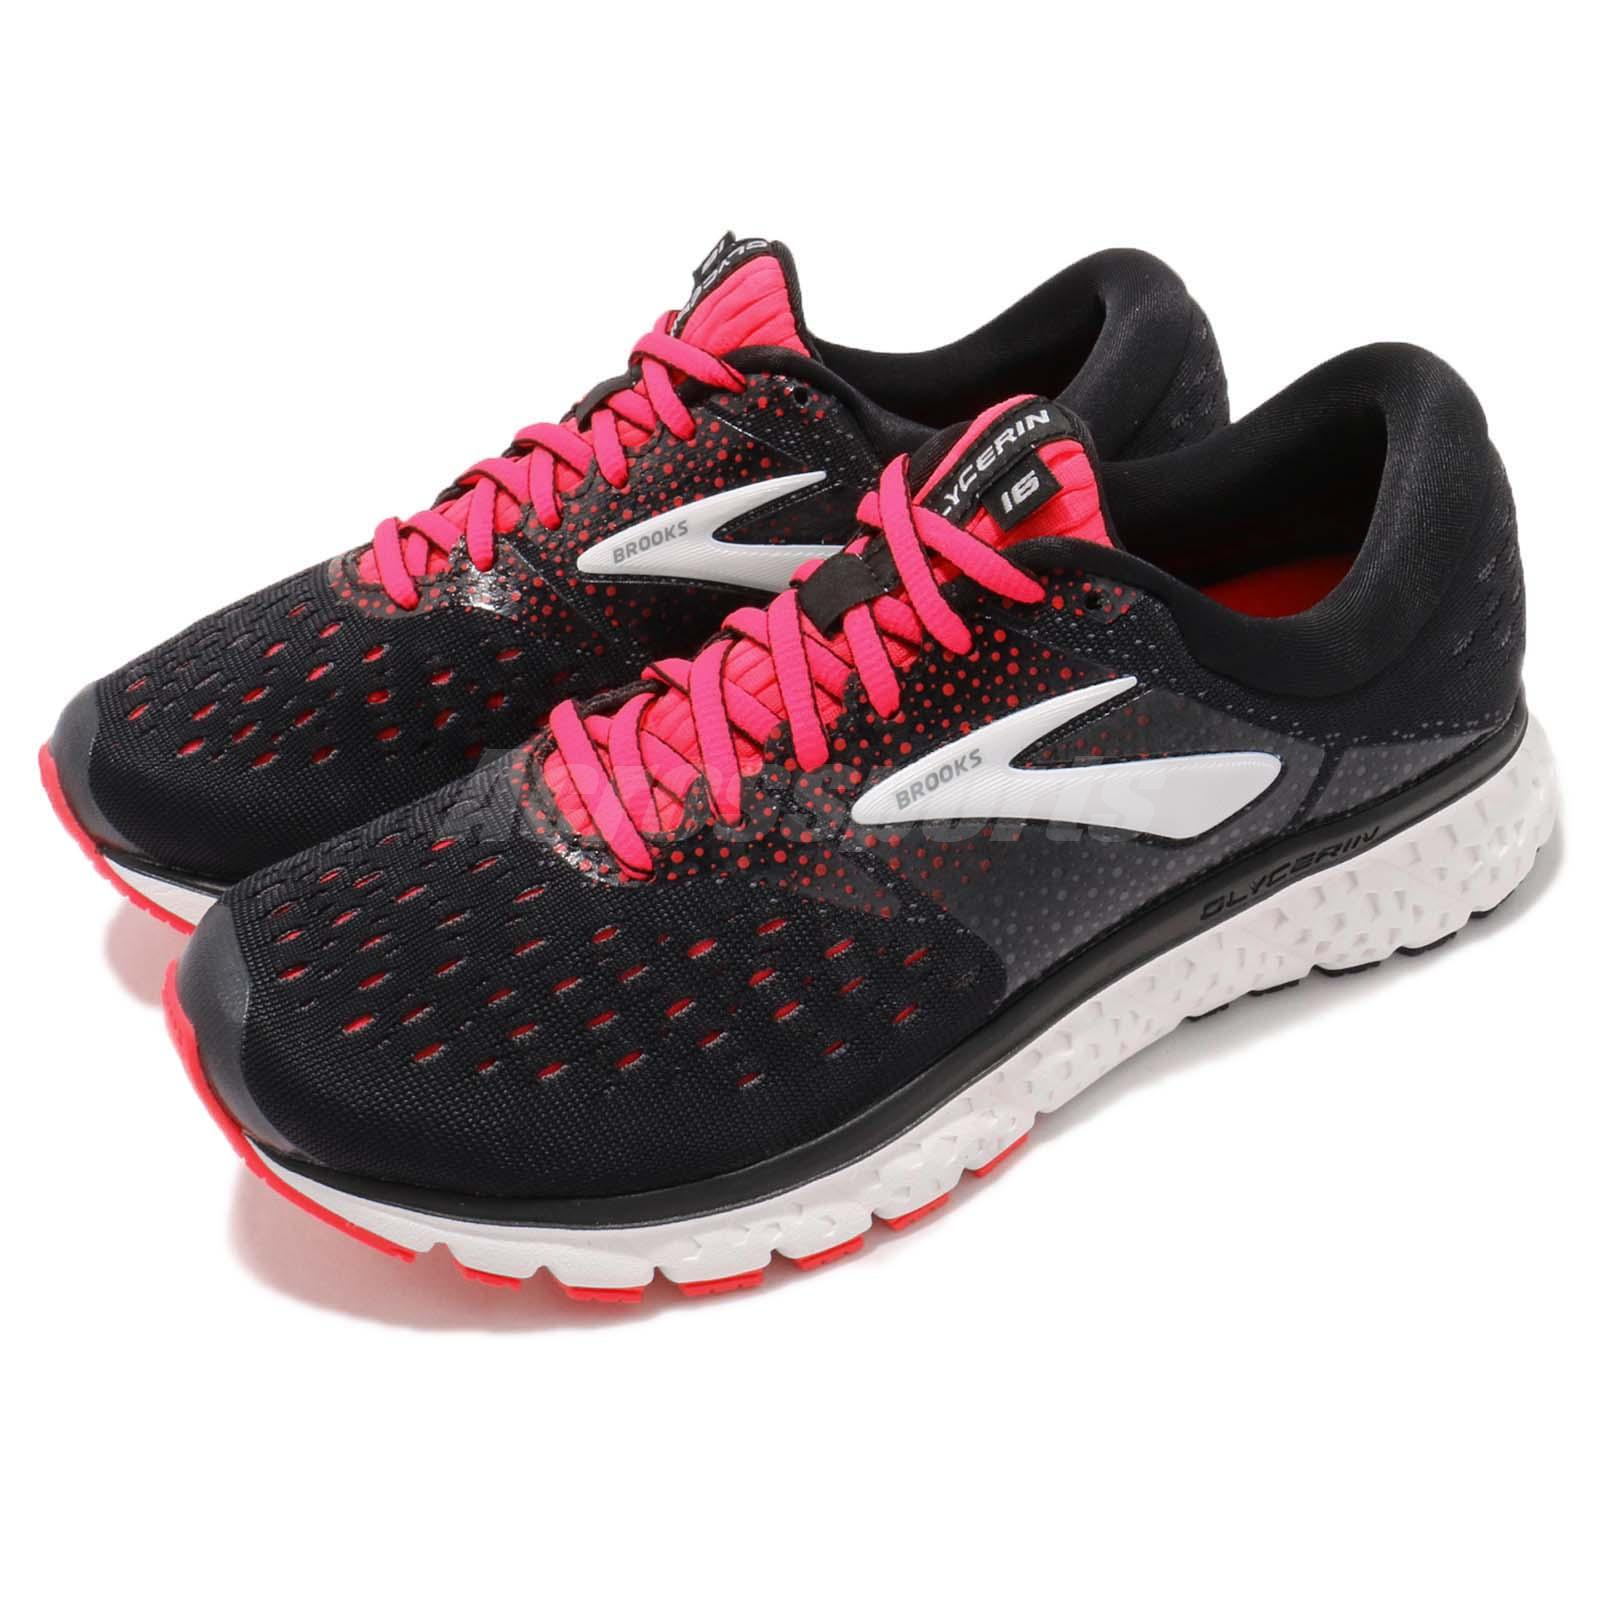 696f1cd8fe8 Details about Brooks Glycerin 16 D WIDE Black Pink White Women Running Shoes  Sneaker 120278 1D